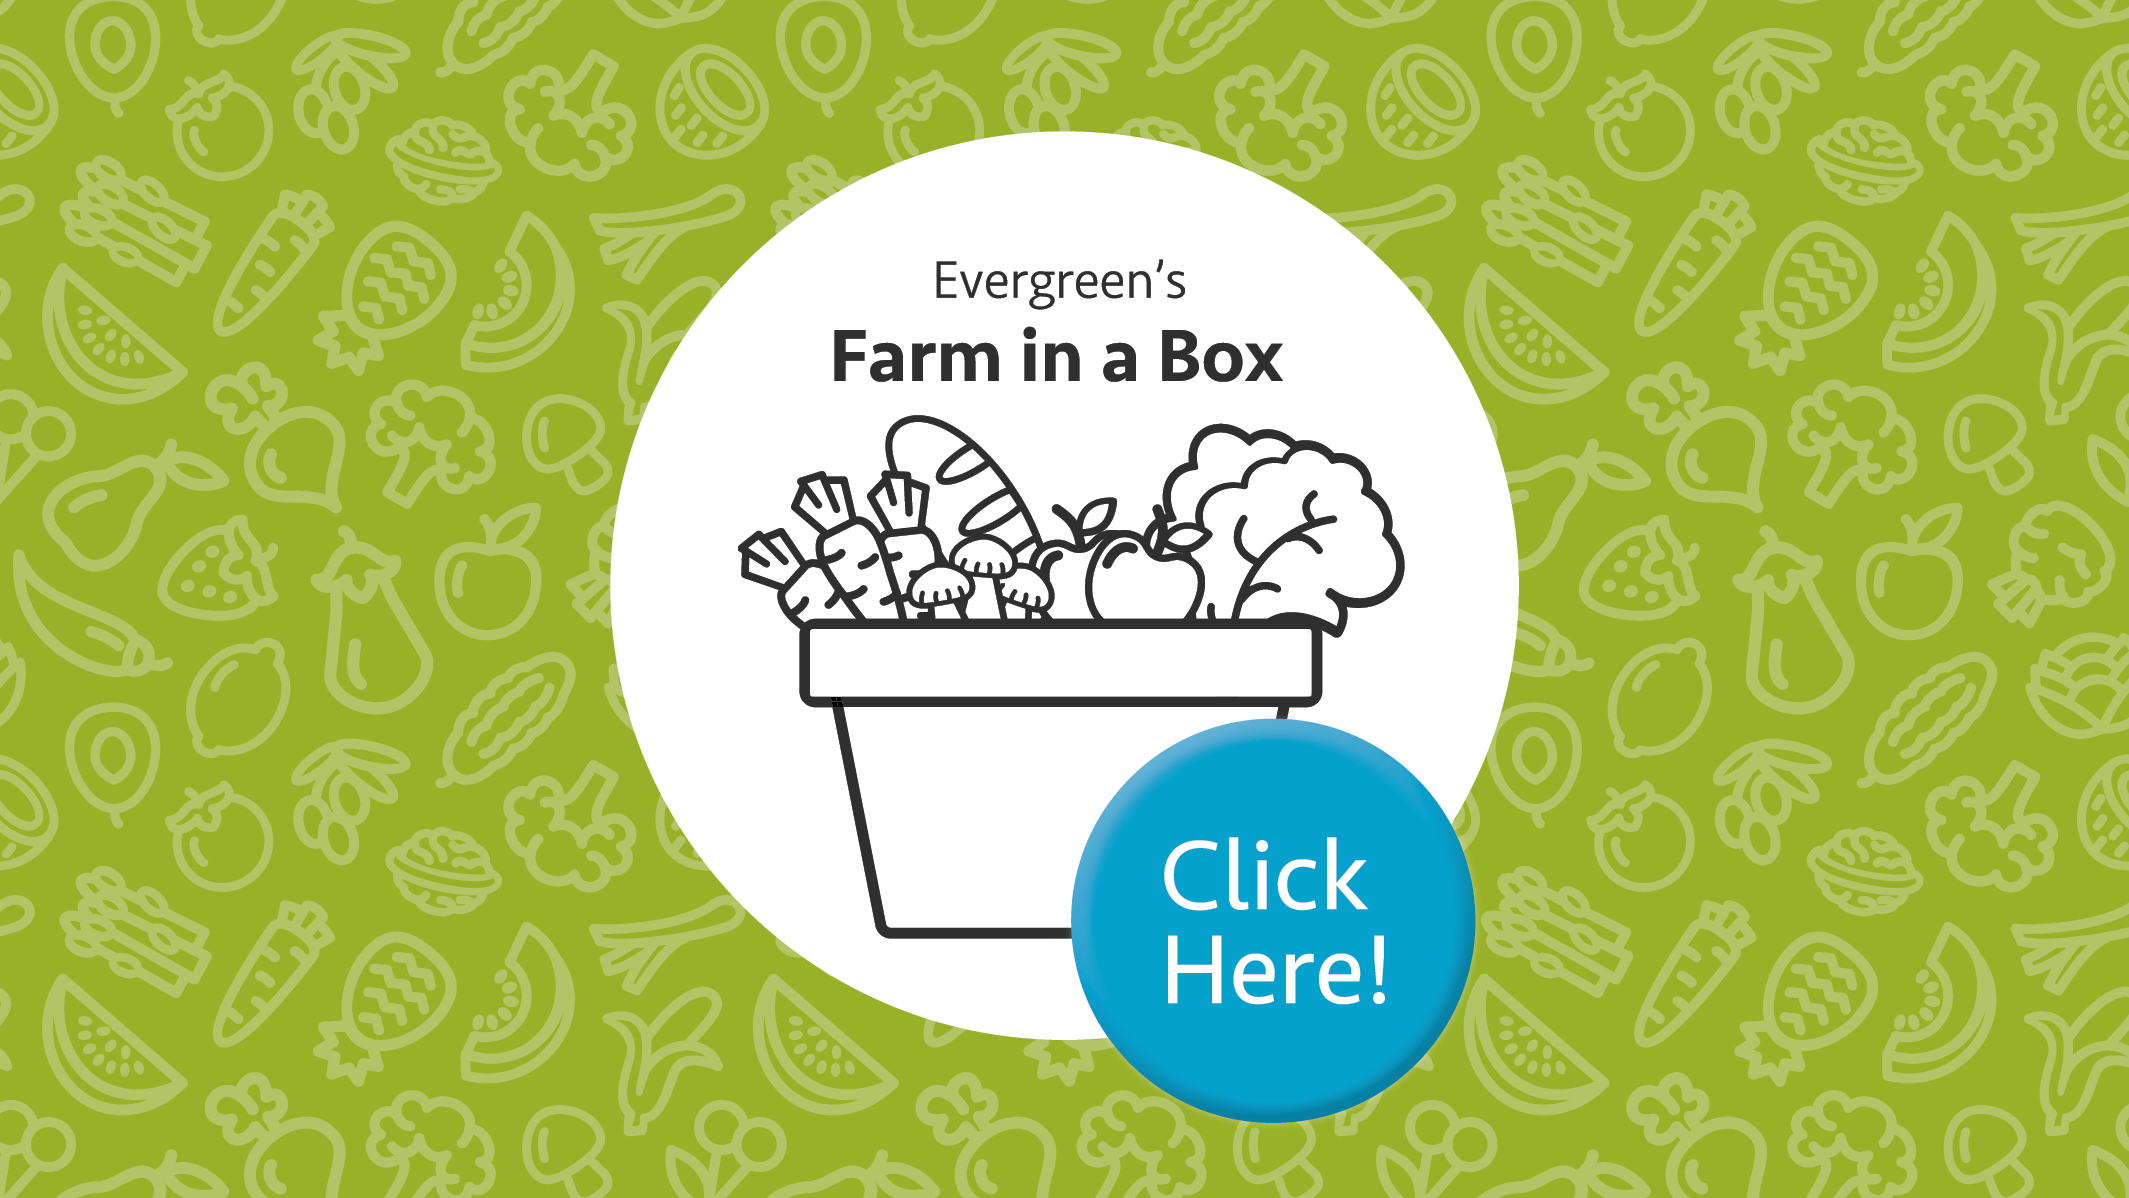 Farm in a Box Click Here